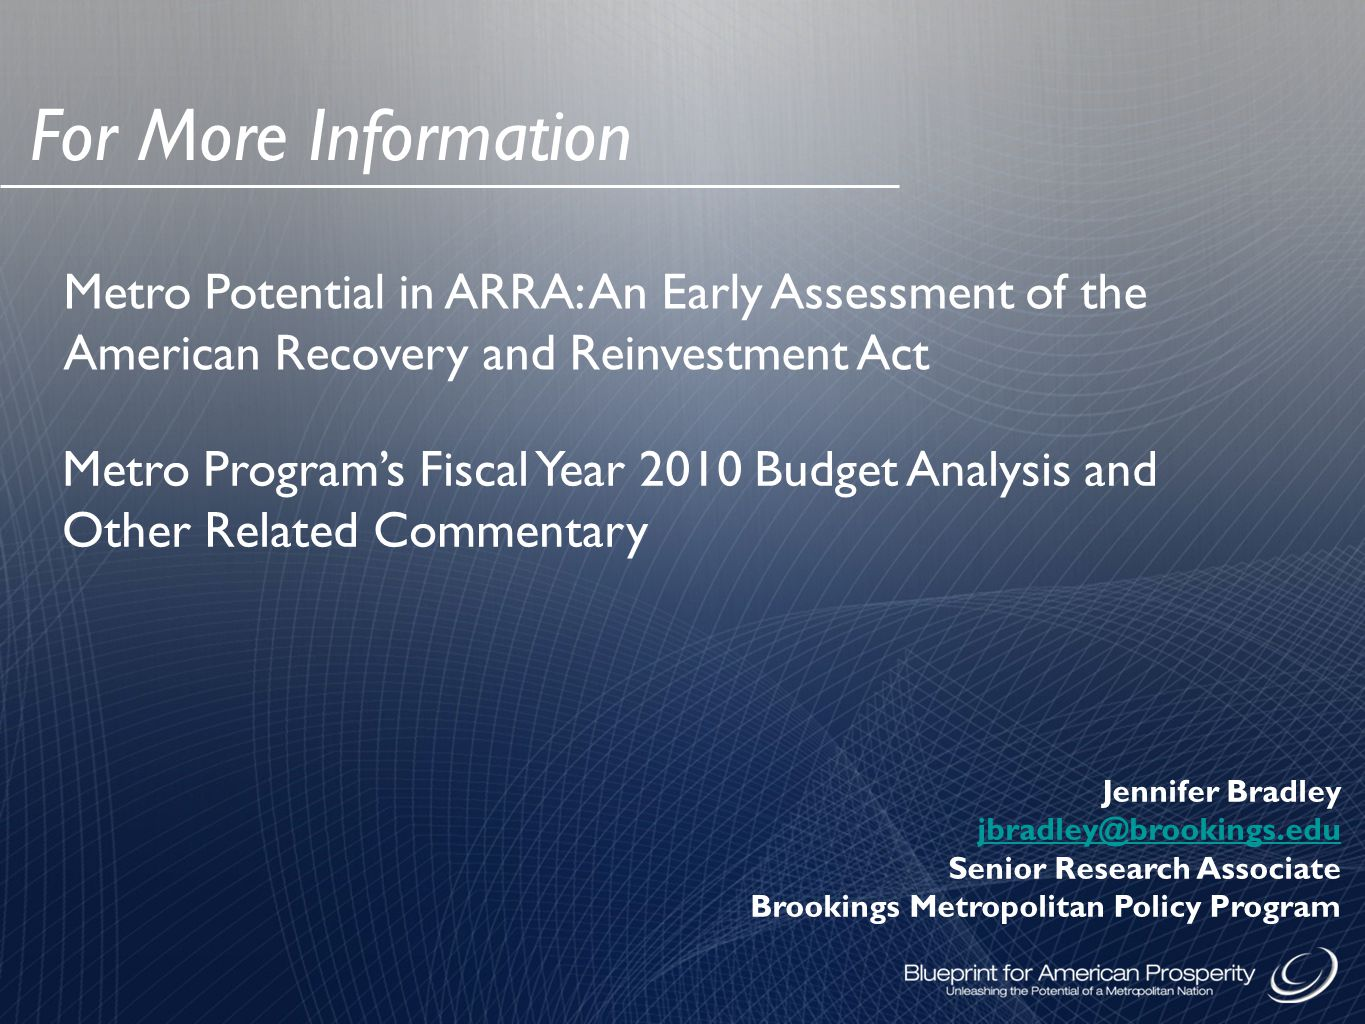 For More Information Jennifer Bradley jbradley@brookings.edu Senior Research Associate Brookings Metropolitan Policy Program Metro Potential in ARRA: An Early Assessment of the American Recovery and Reinvestment Act Metro Program's Fiscal Year 2010 Budget Analysis and Other Related Commentary